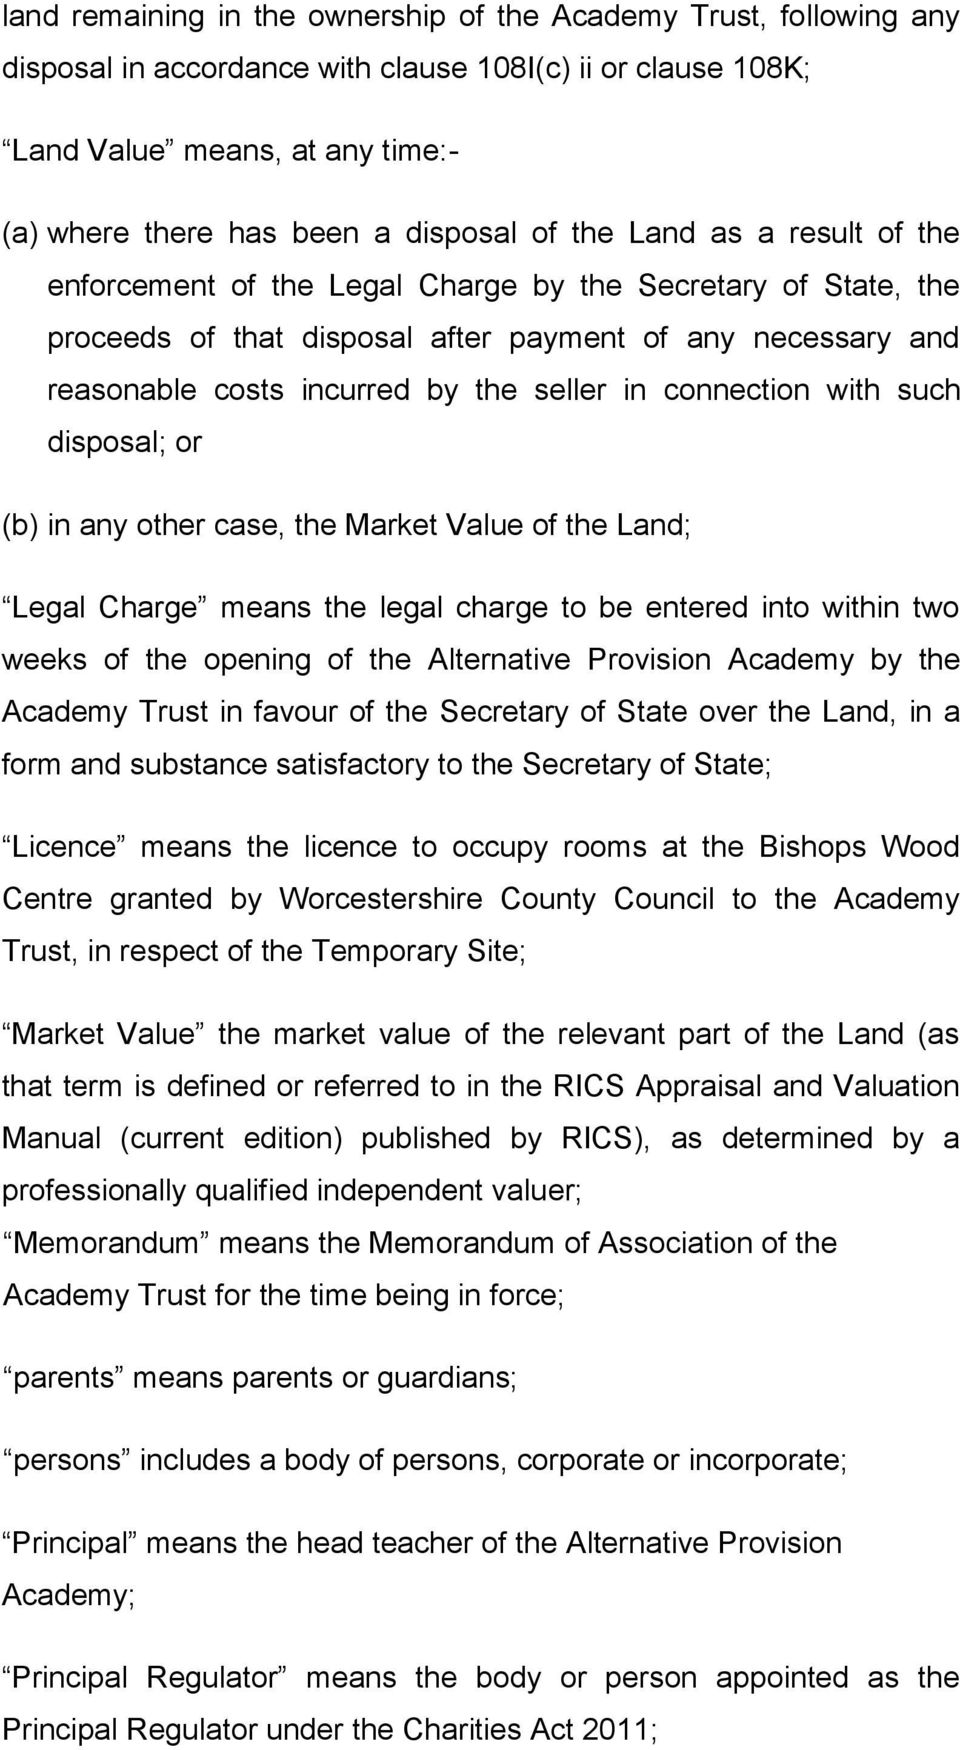 connection with such disposal; or (b) in any other case, the Market Value of the Land; Legal Charge means the legal charge to be entered into within two weeks of the opening of the Alternative